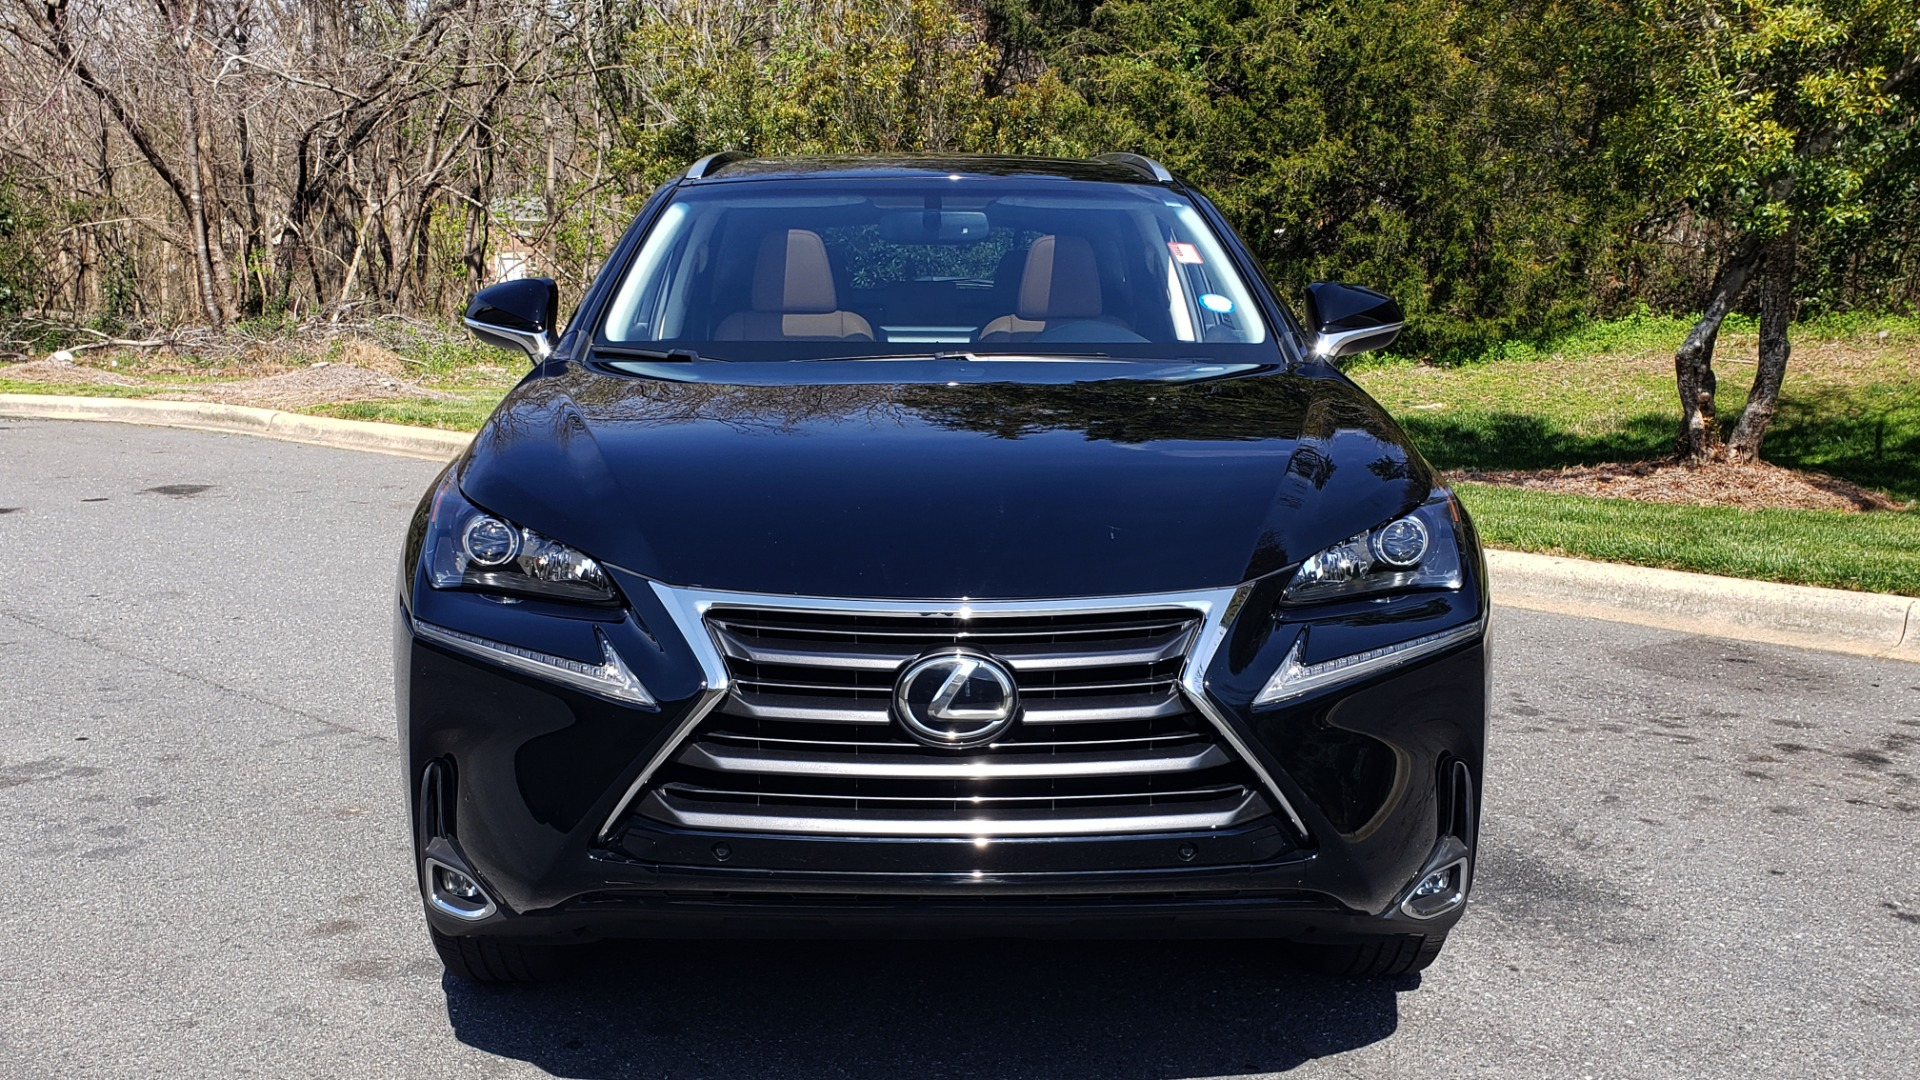 Used 2016 Lexus NX 200T PREM PKG / NAV / SUNROOF / PRE-COLLISION / PARK ASST for sale Sold at Formula Imports in Charlotte NC 28227 20